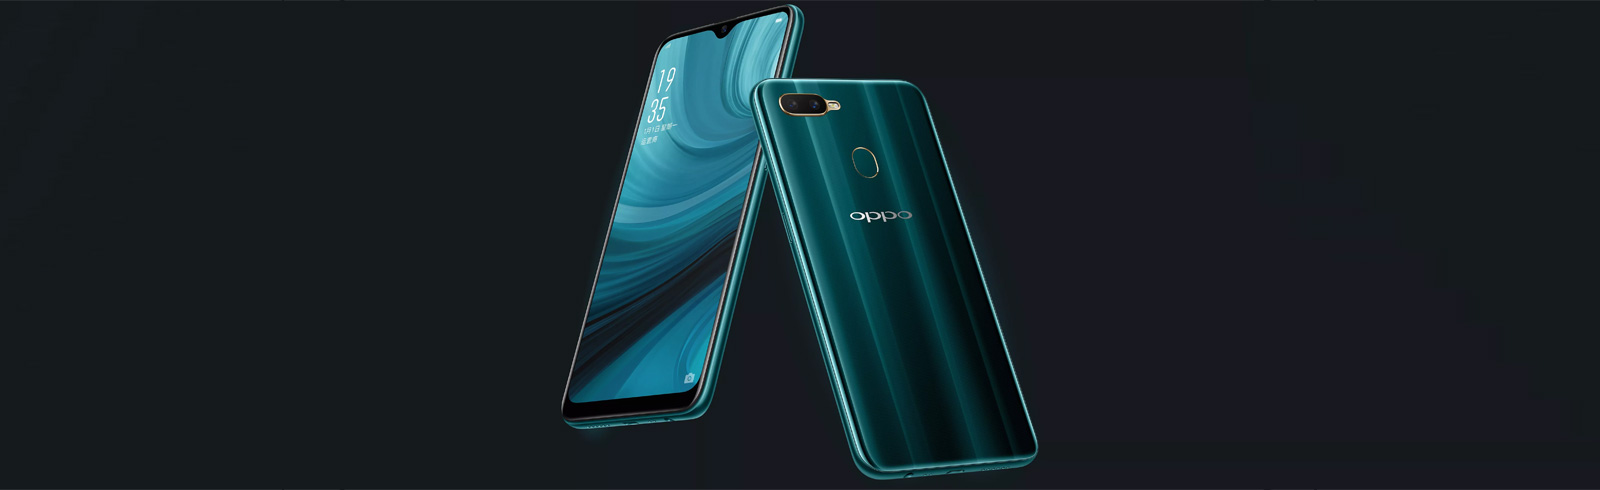 Oppo unveils the Oppo A7n with a Helio P35 chipset